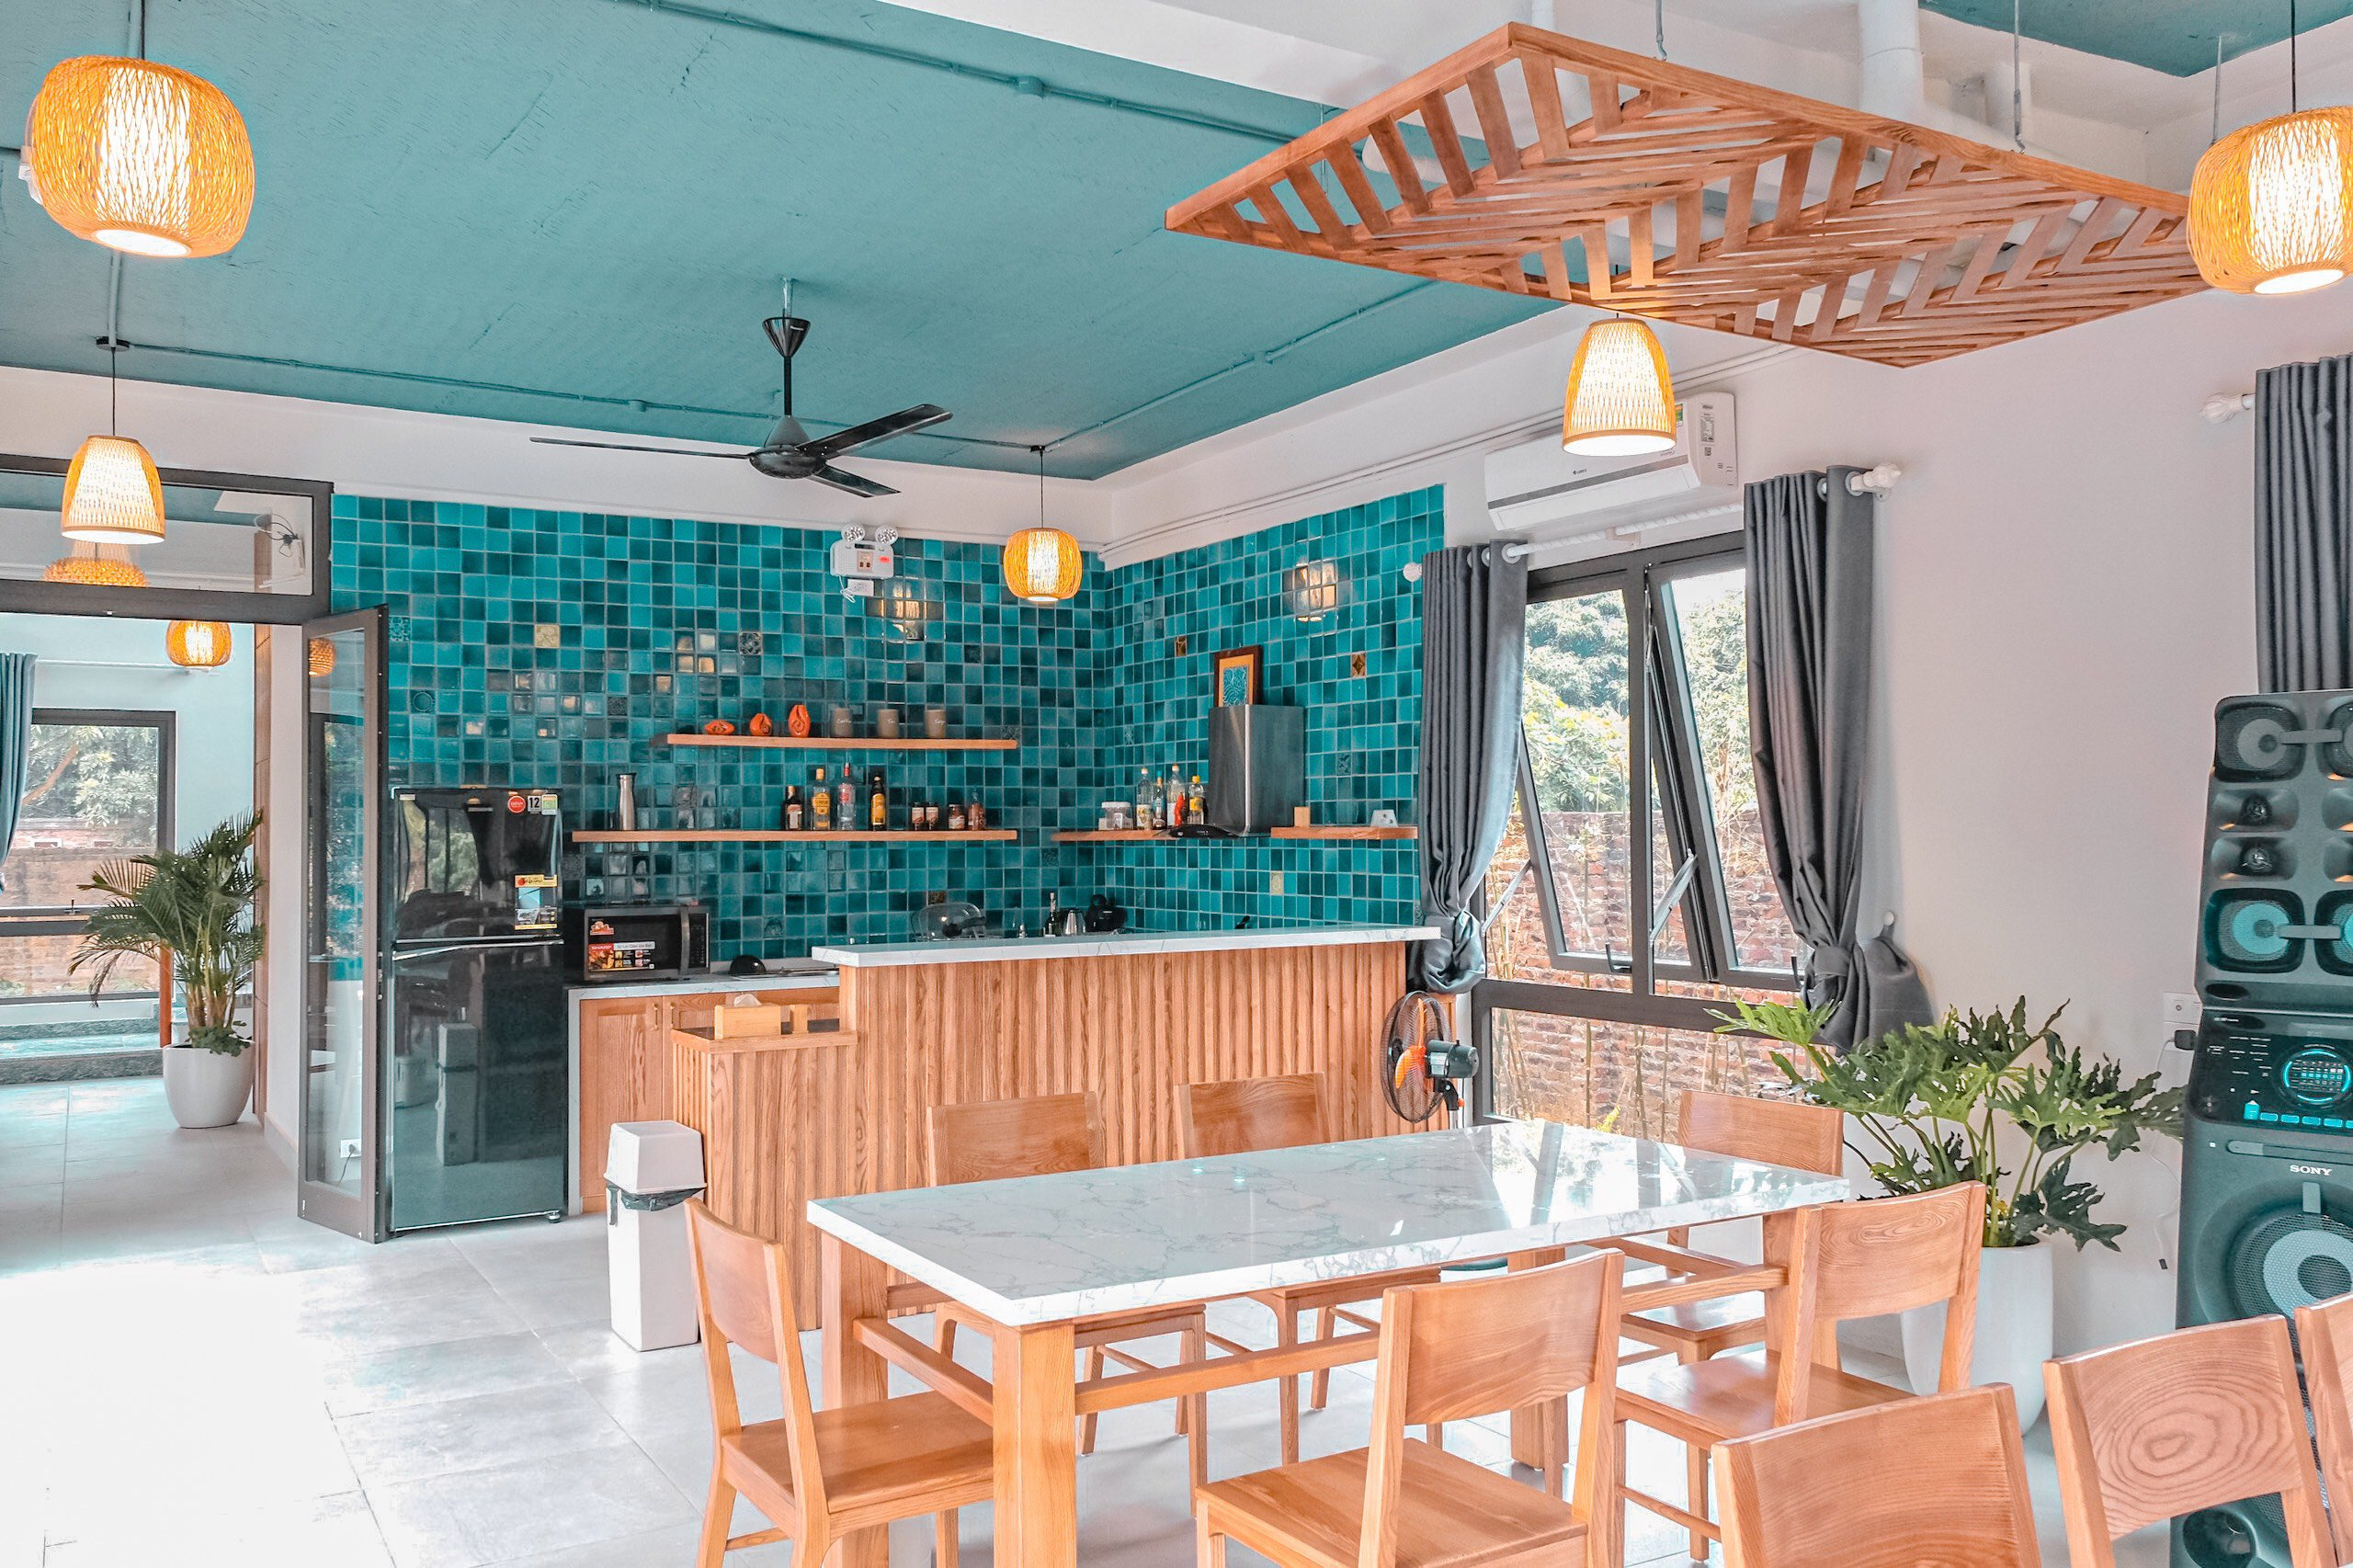 phong-an-the-bright-house-villa-homestay-soc-son-ha-noi-02